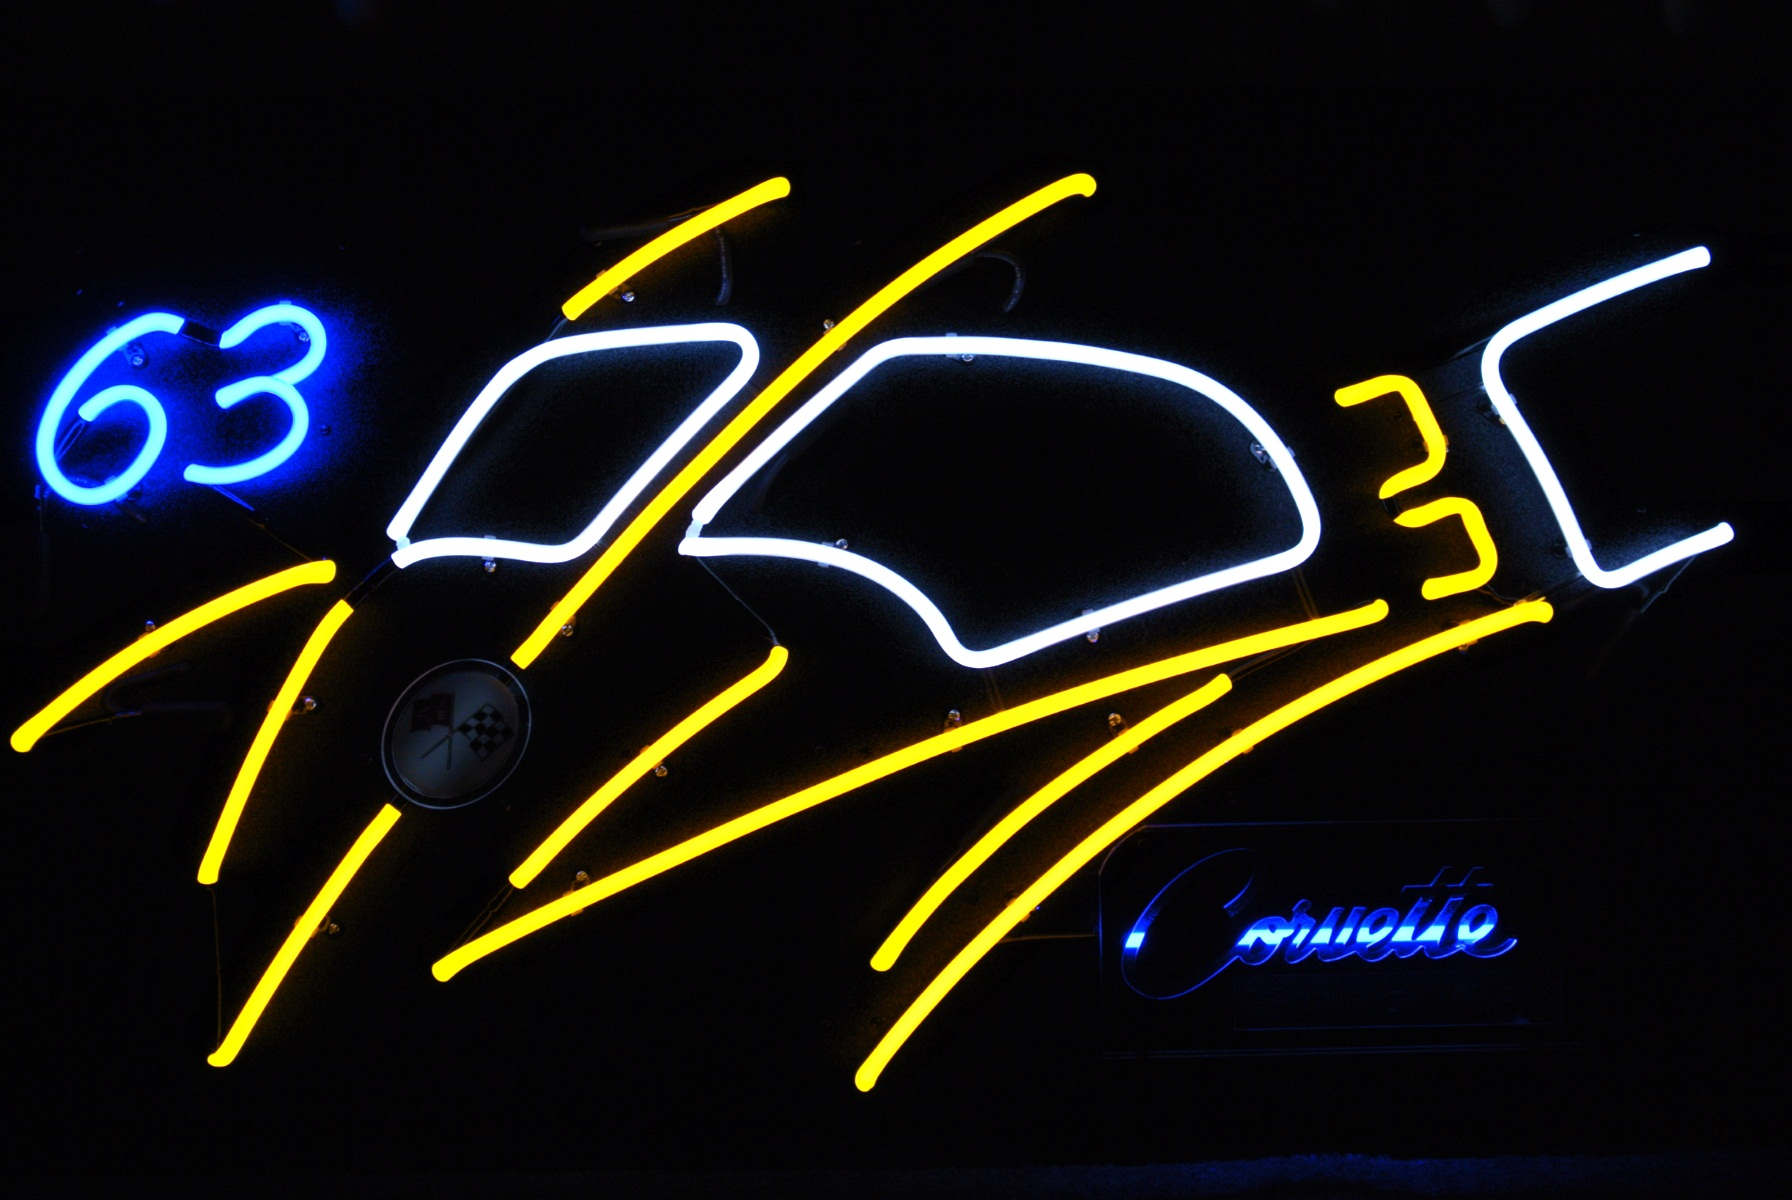 Custom Automotive Neon Signs for New Car Dealerships by John Barton - BartonNeonMagic.com